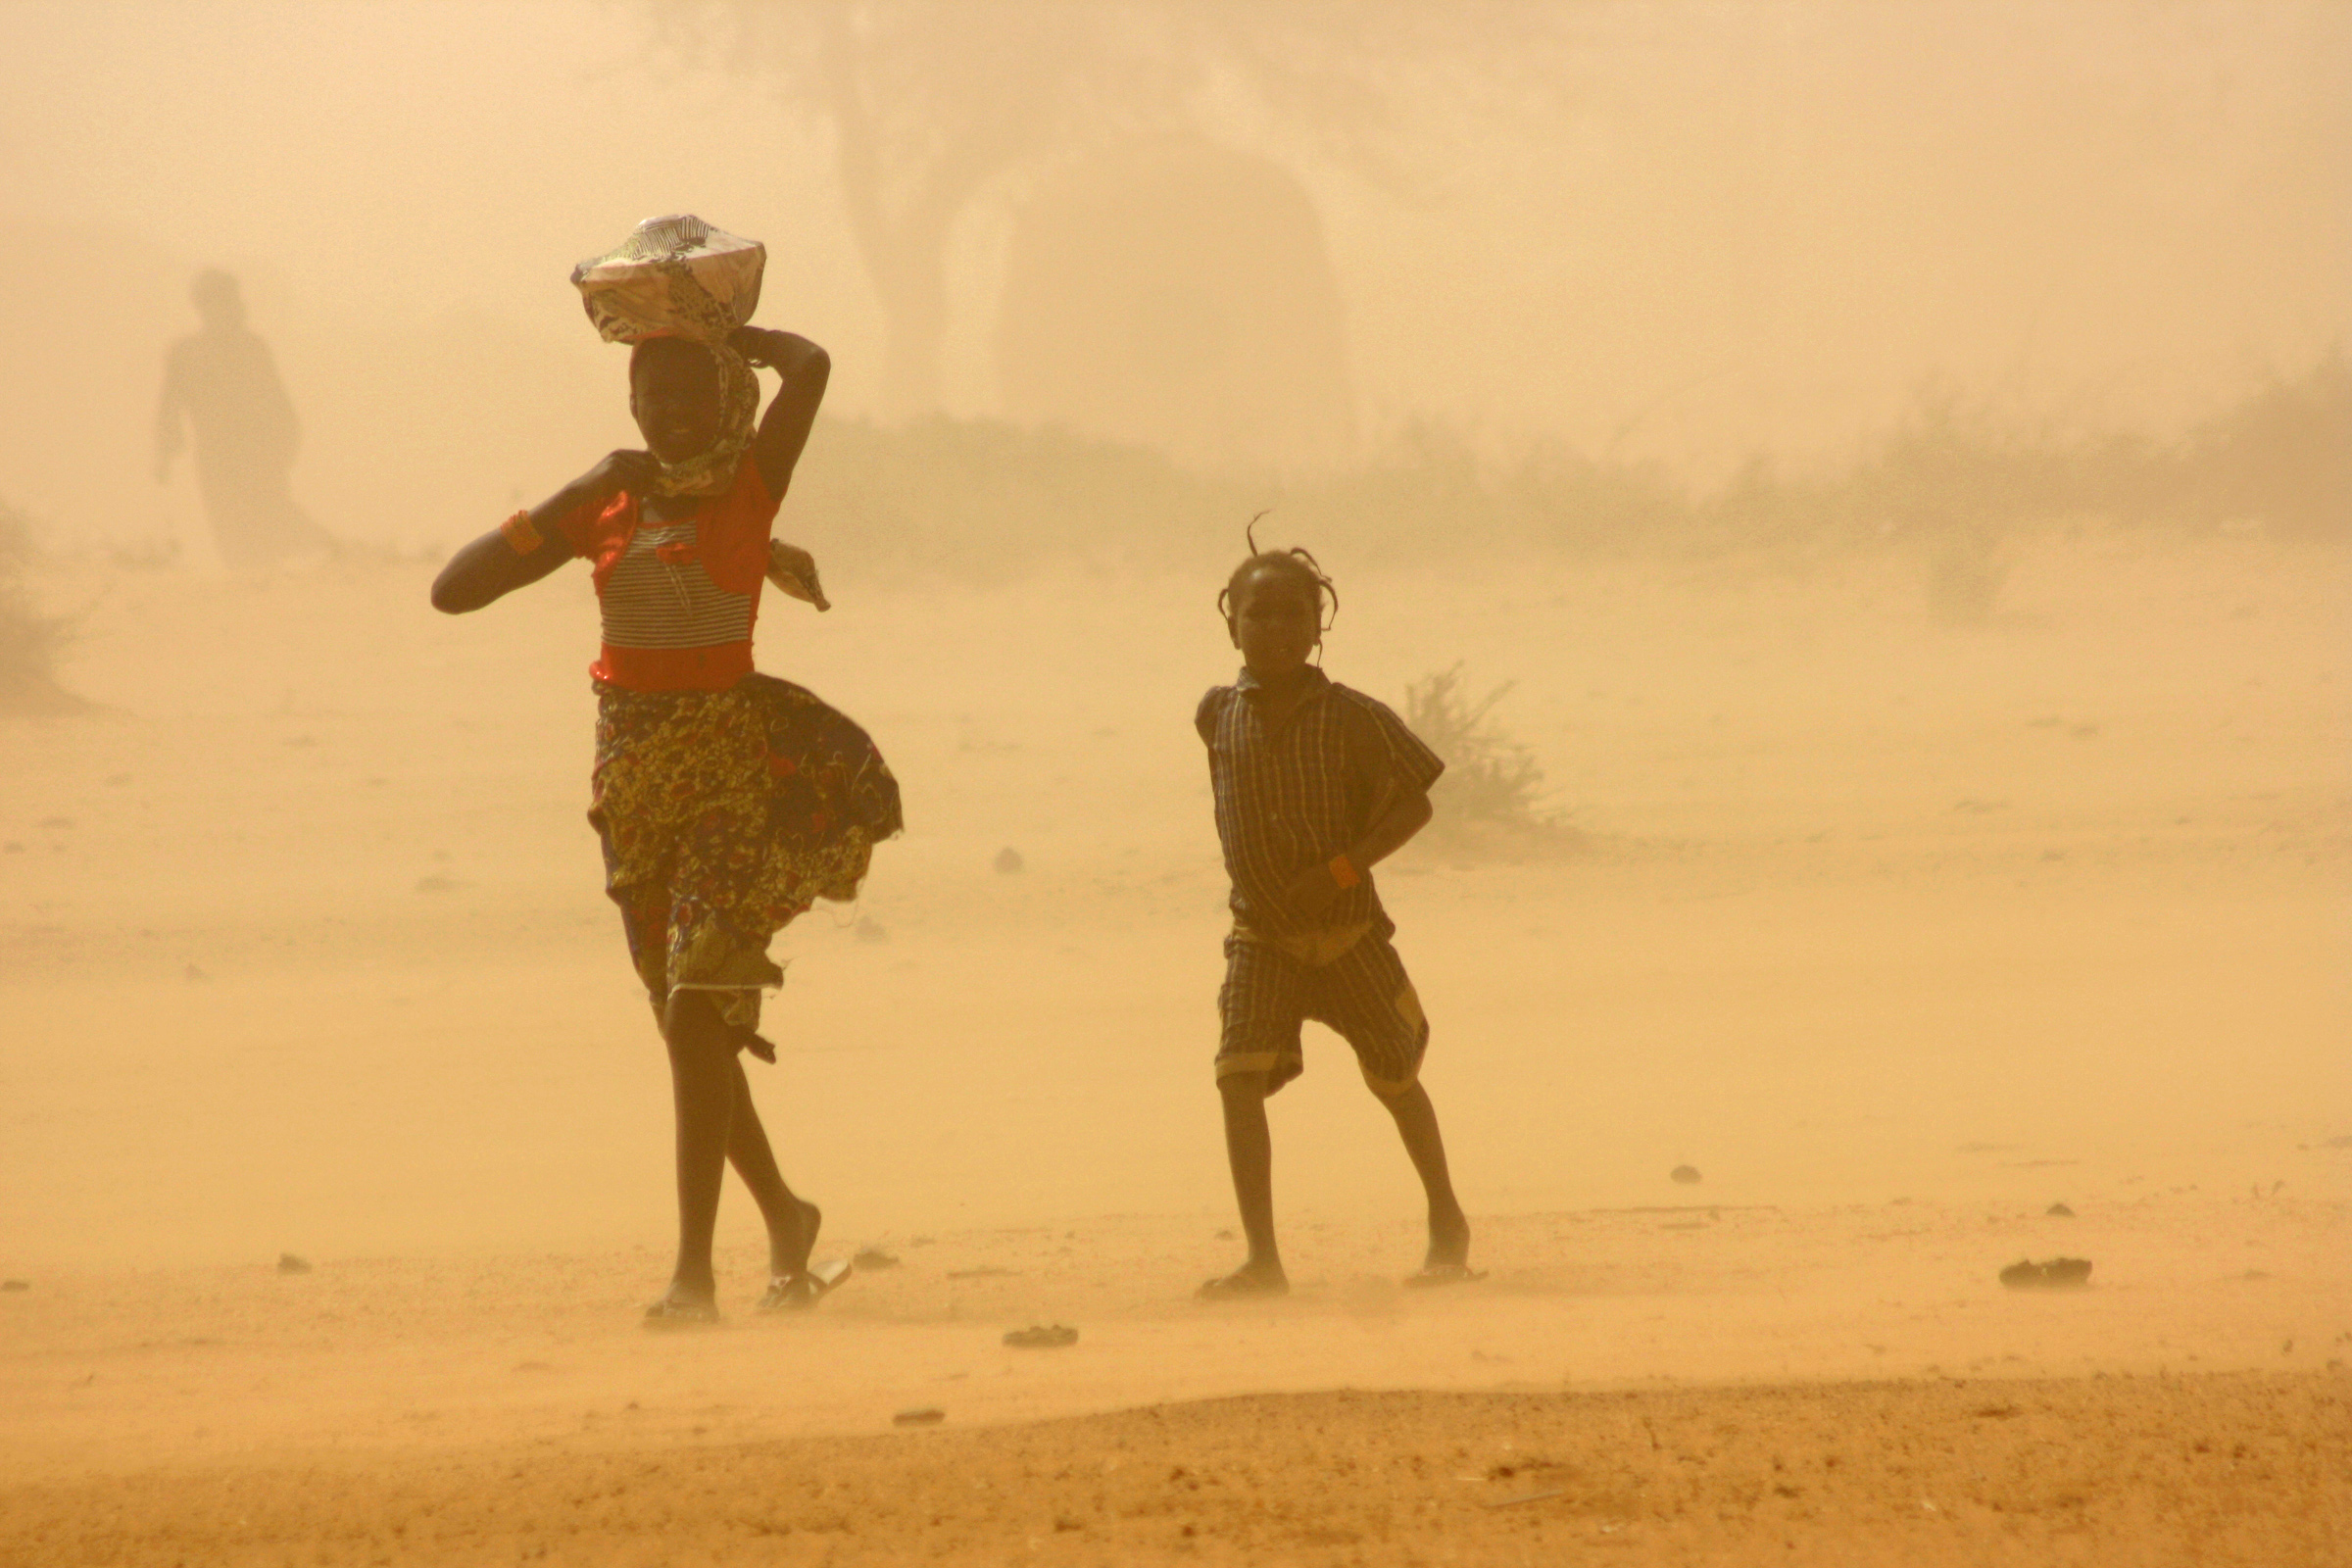 Children walk through a sandstorm in Tillaberi region, Niger (Feb 2012)